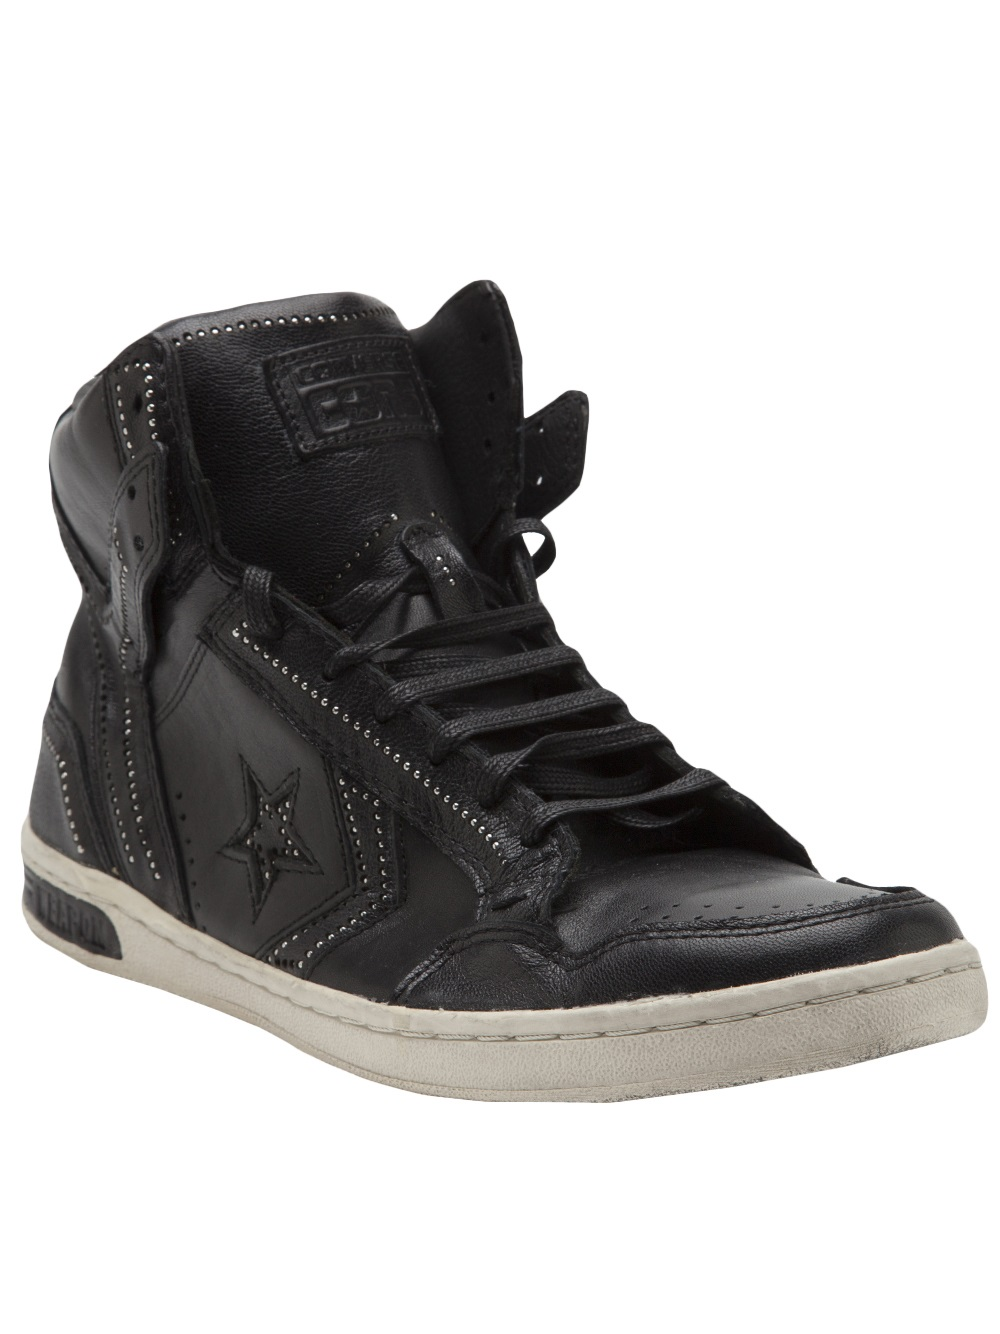 Converse Jv Weapon High Top Sneaker In Black For Men Lyst